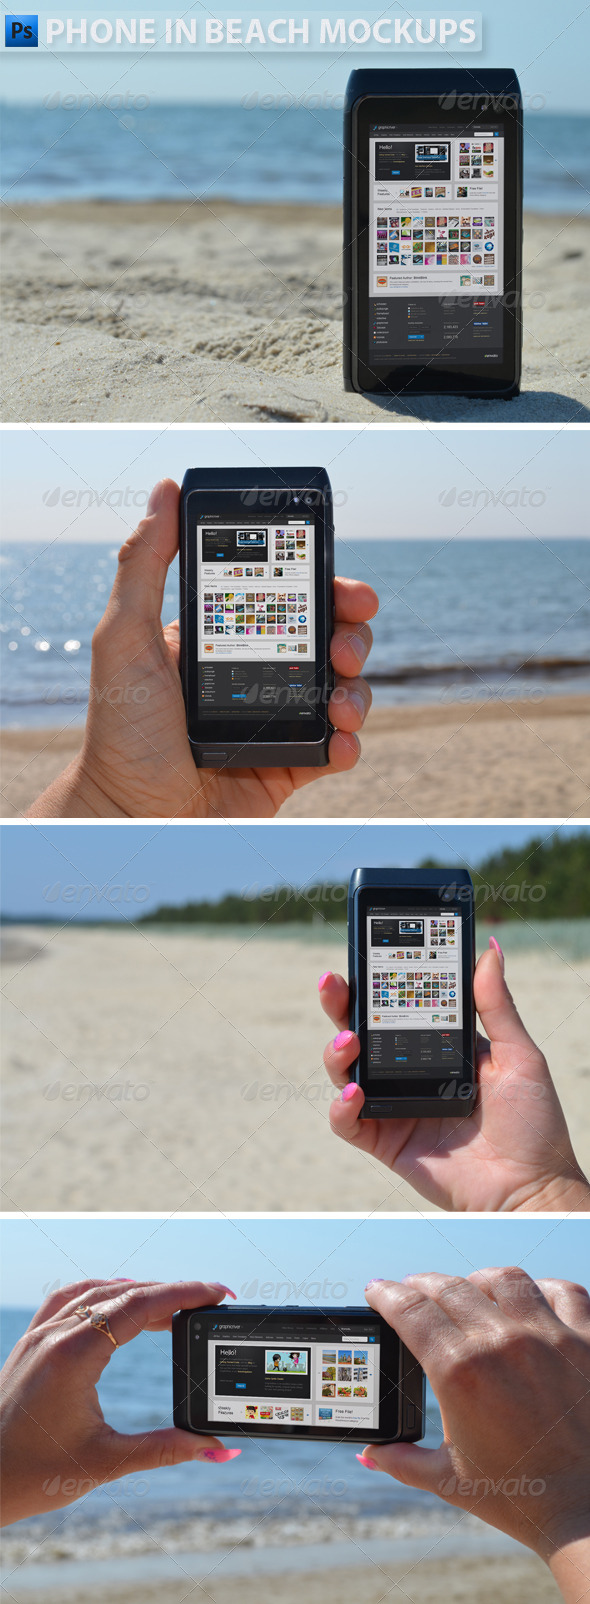 Phone in Beach Mock-ups - Product Mock-Ups Graphics